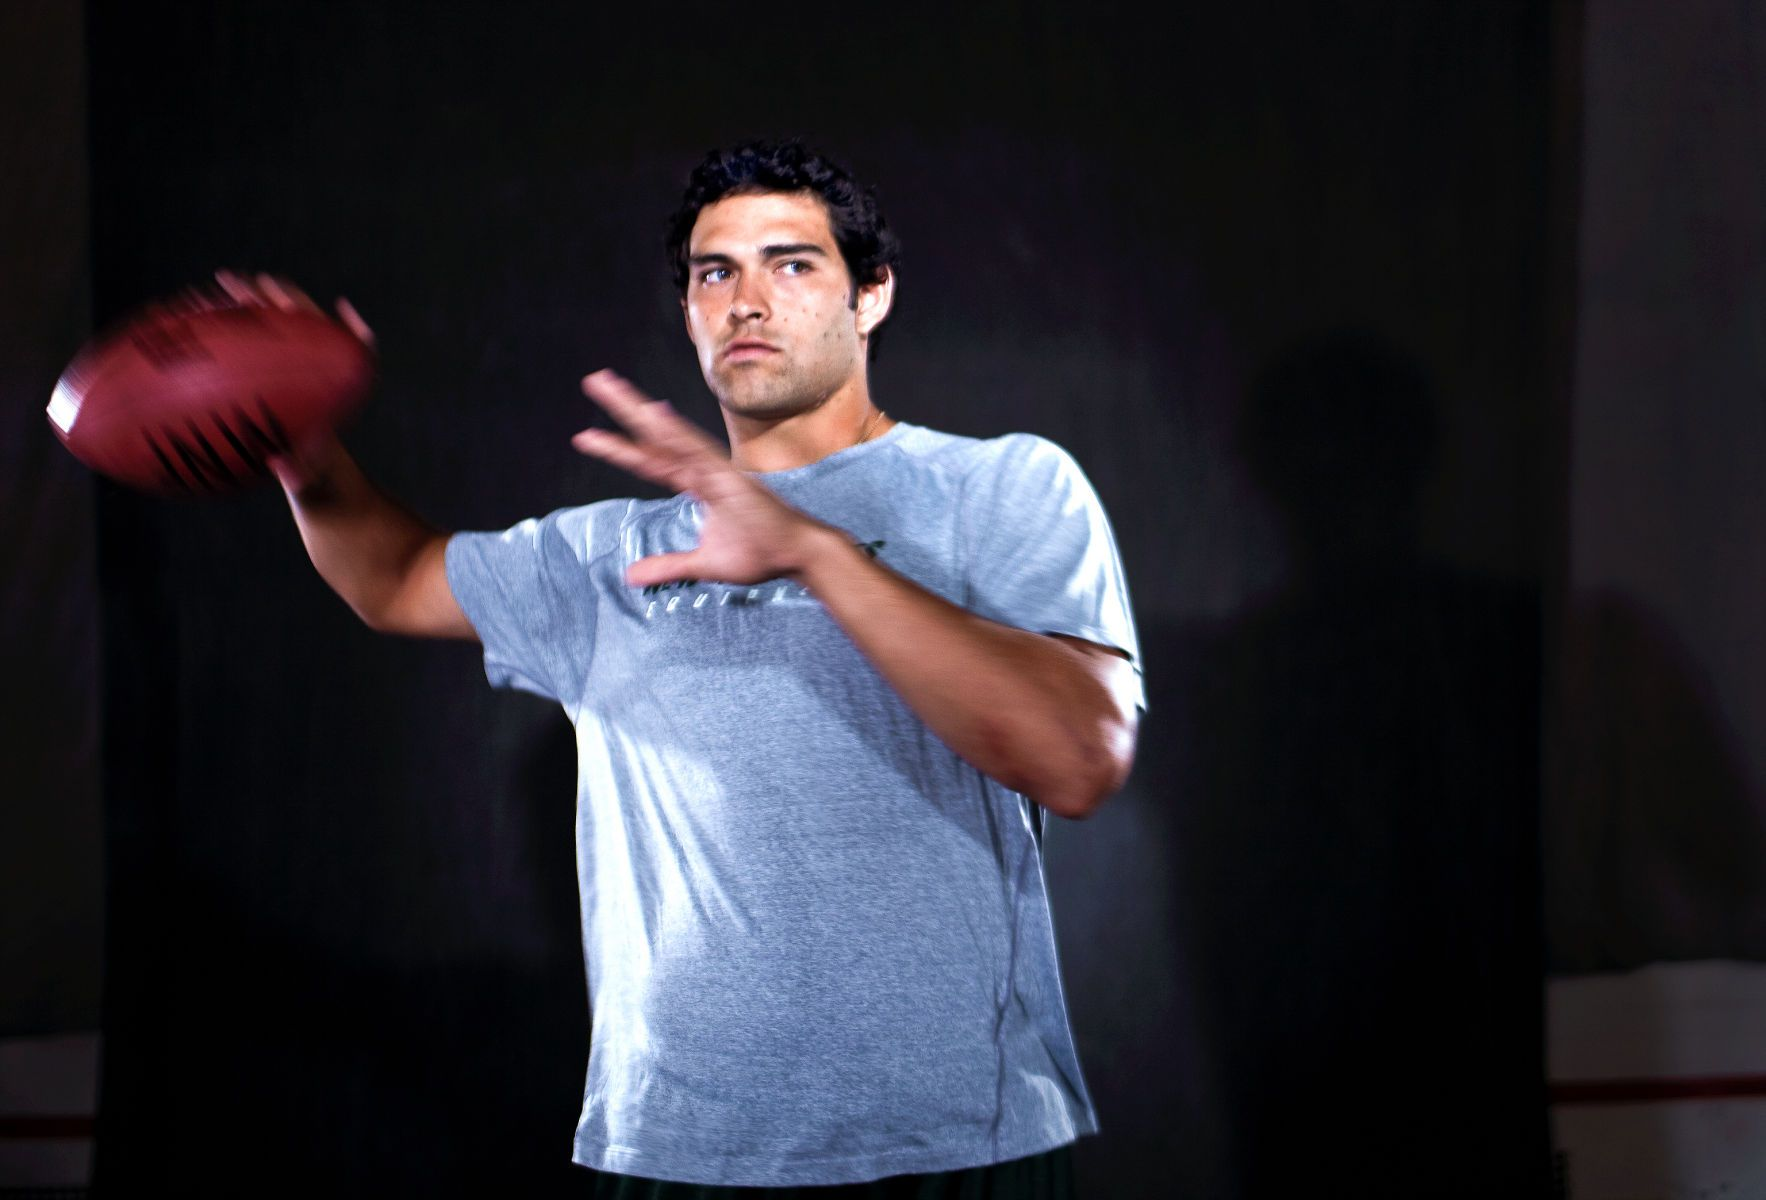 Mark Sanchez, quarterback for the New York Jets